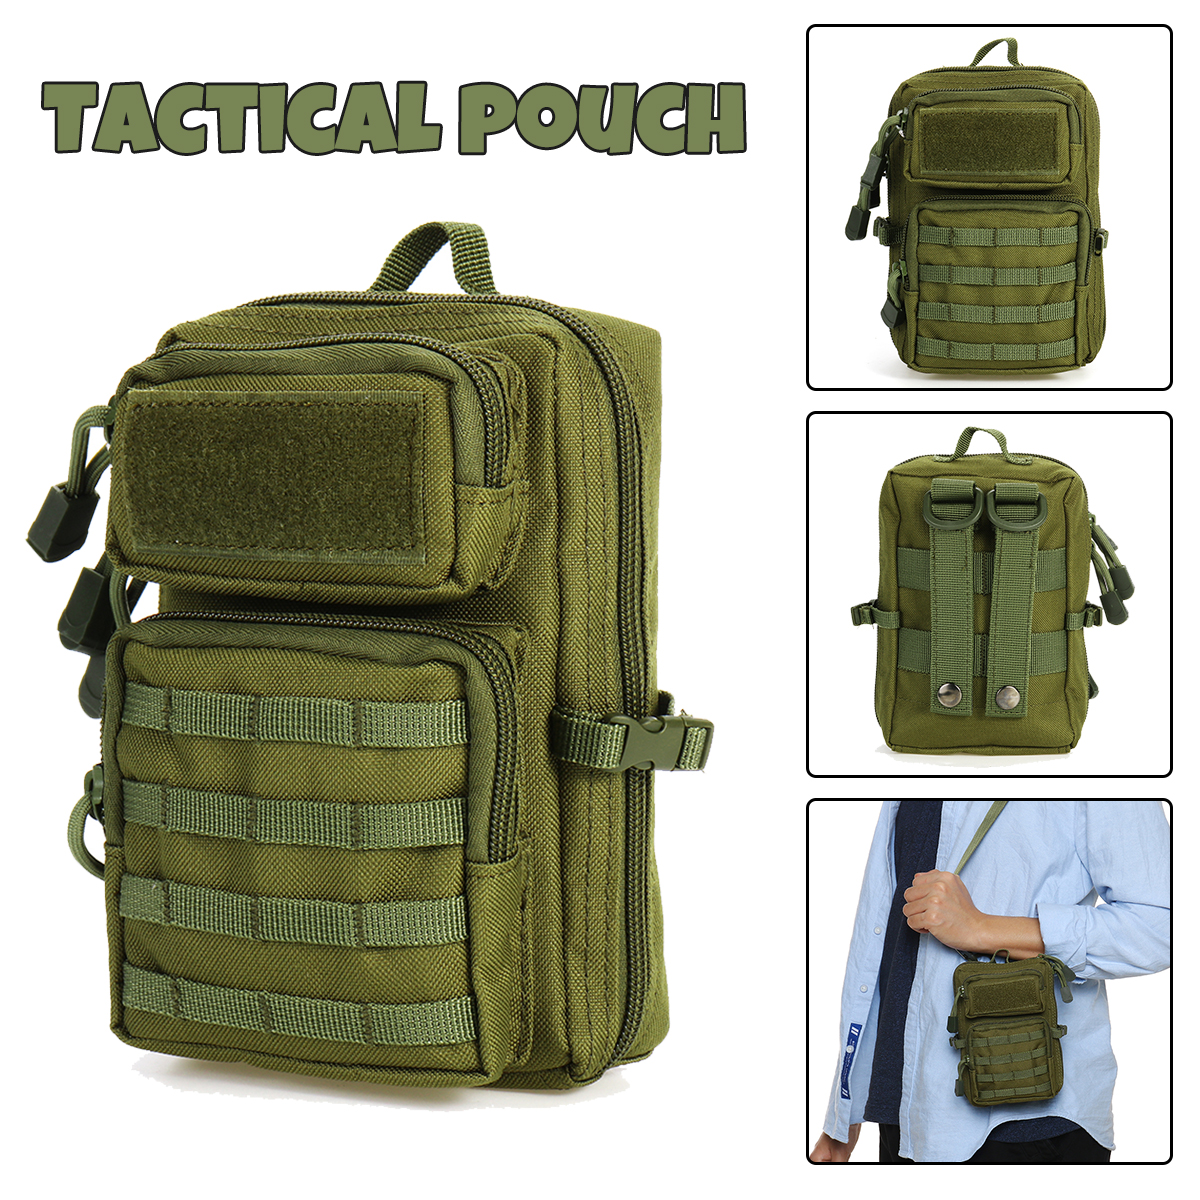 Universal Tactical Pouch Bag Holster Military Molle Hip Waist Belt Bag Zipper Wallet Pouch Purse Phone Case Camping Hiking Bags